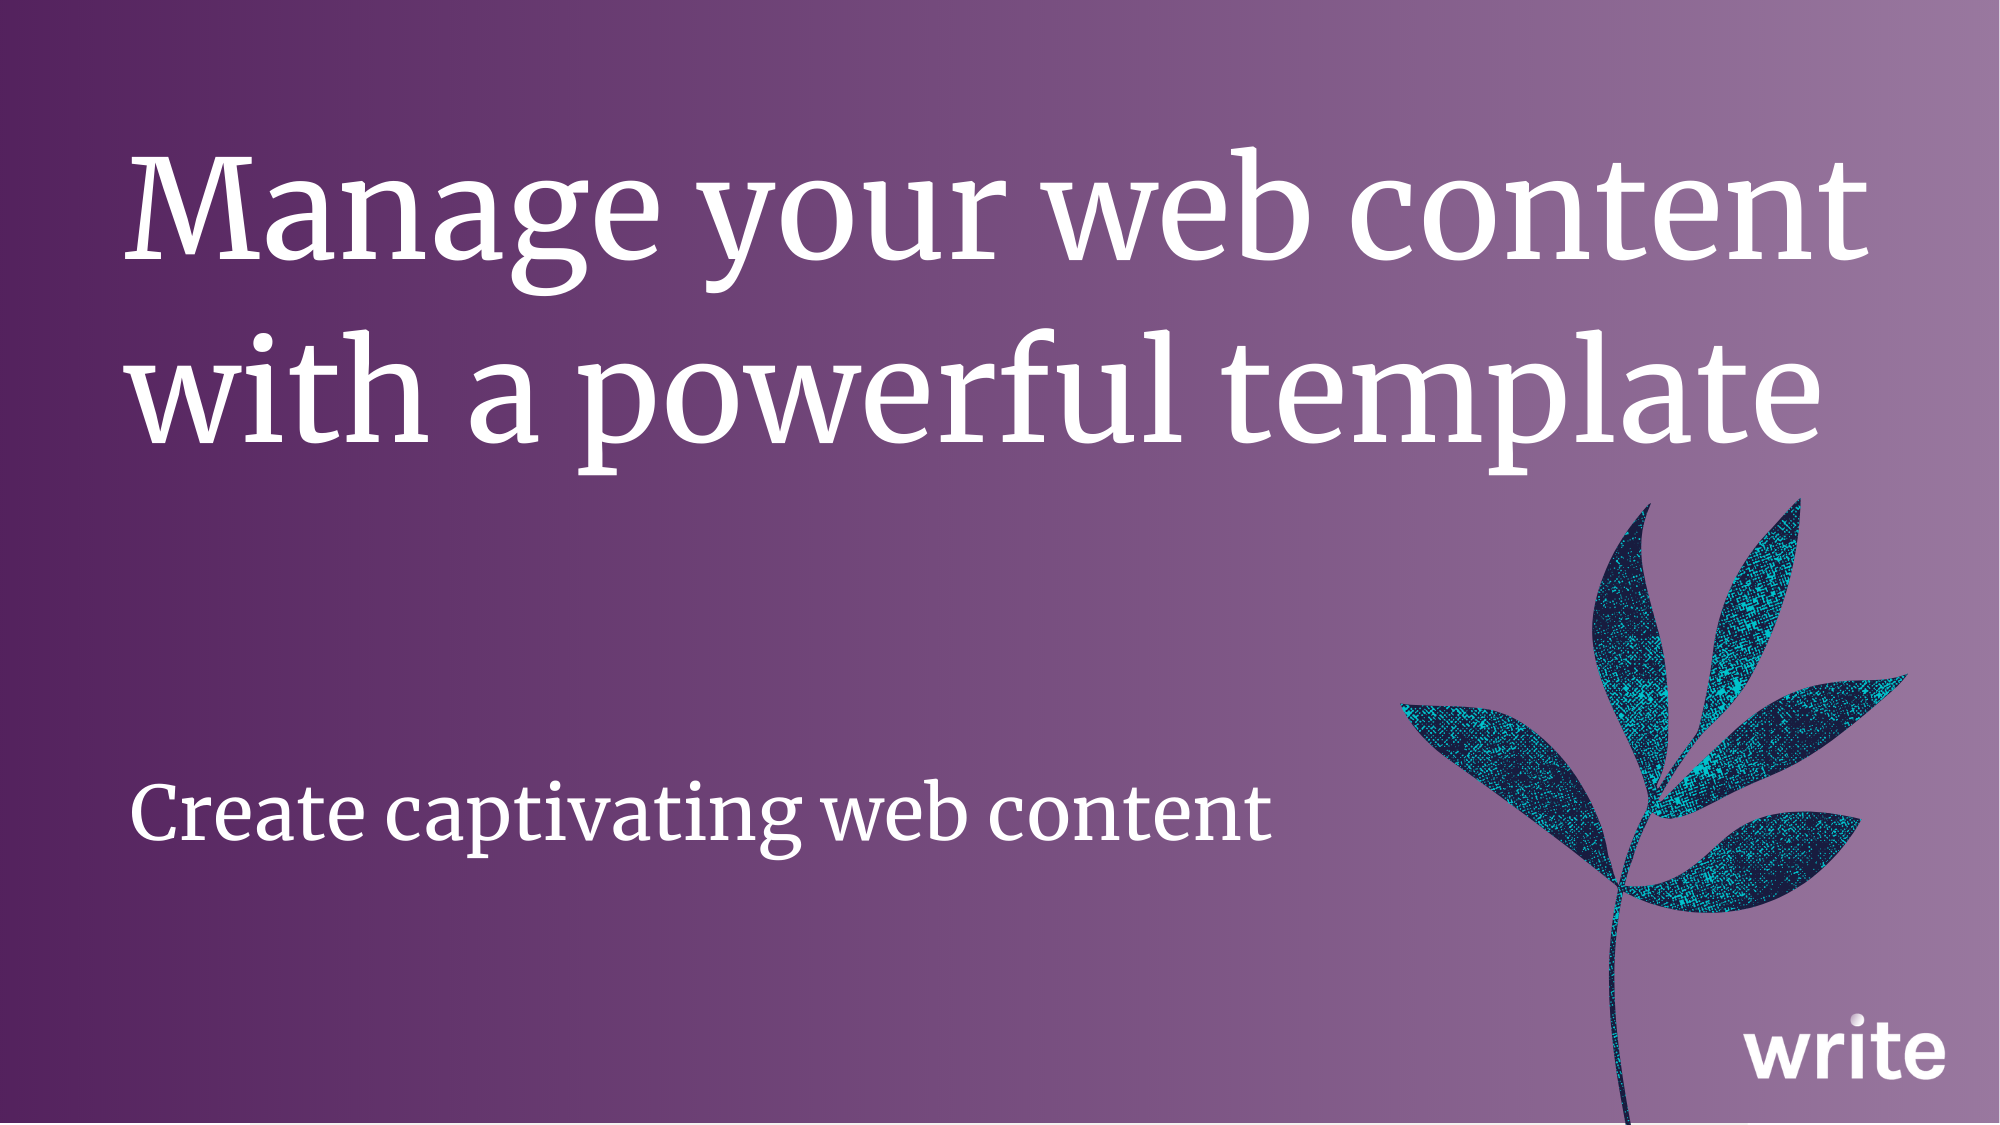 Manage your web content with a powerful template image